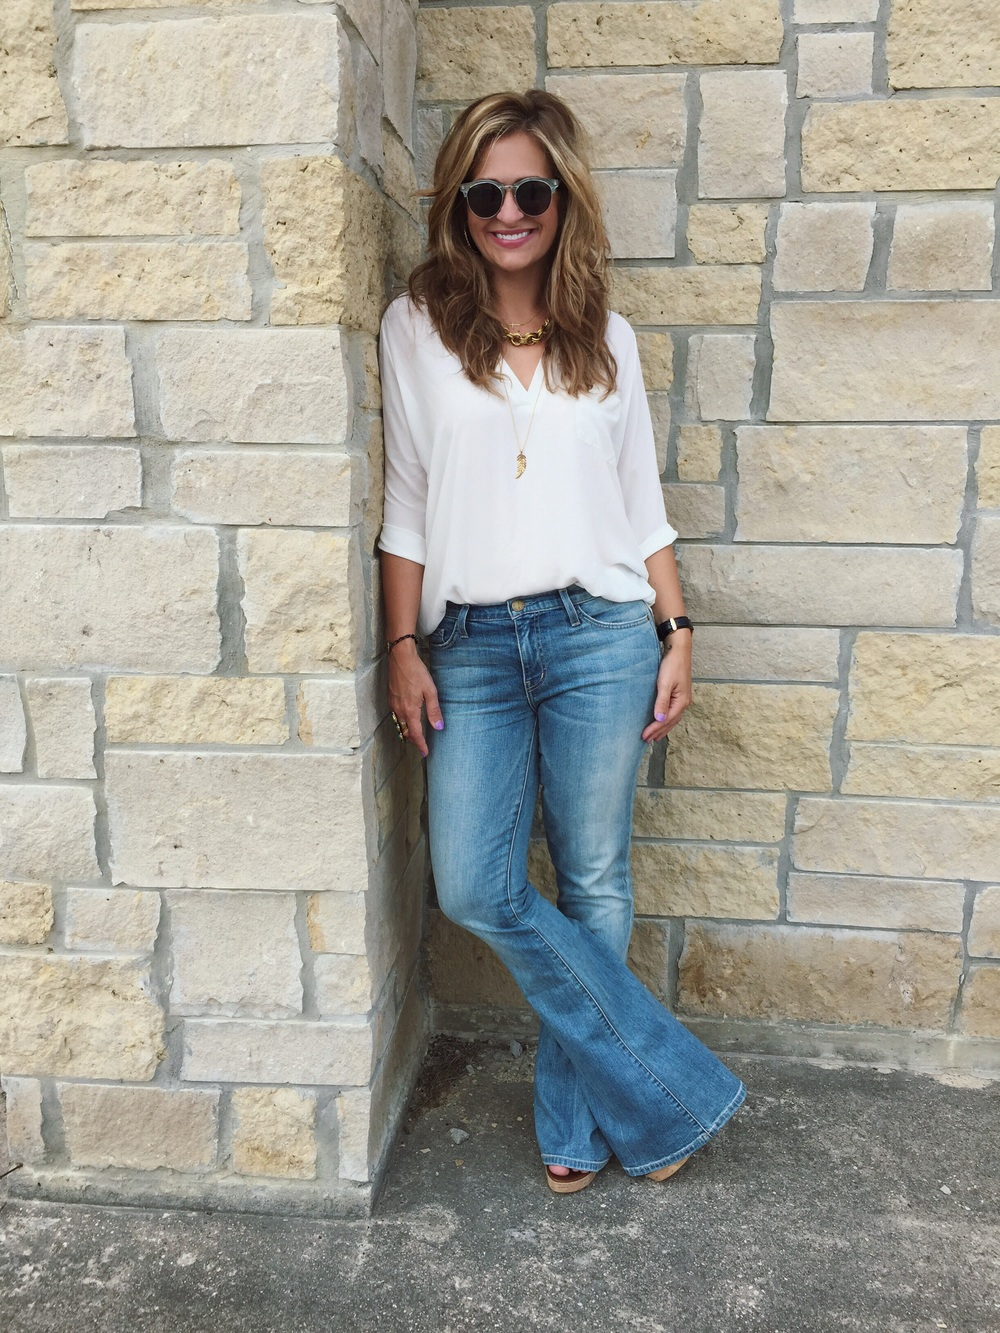 Jeans:  Current Elliot  Top:  Lush  (part of the Nordstrom anniversary sale) Wedges:  Sole Society  Sunnies:  Nordstrom  Necklaces:  John Wind  and  Stella & Dot